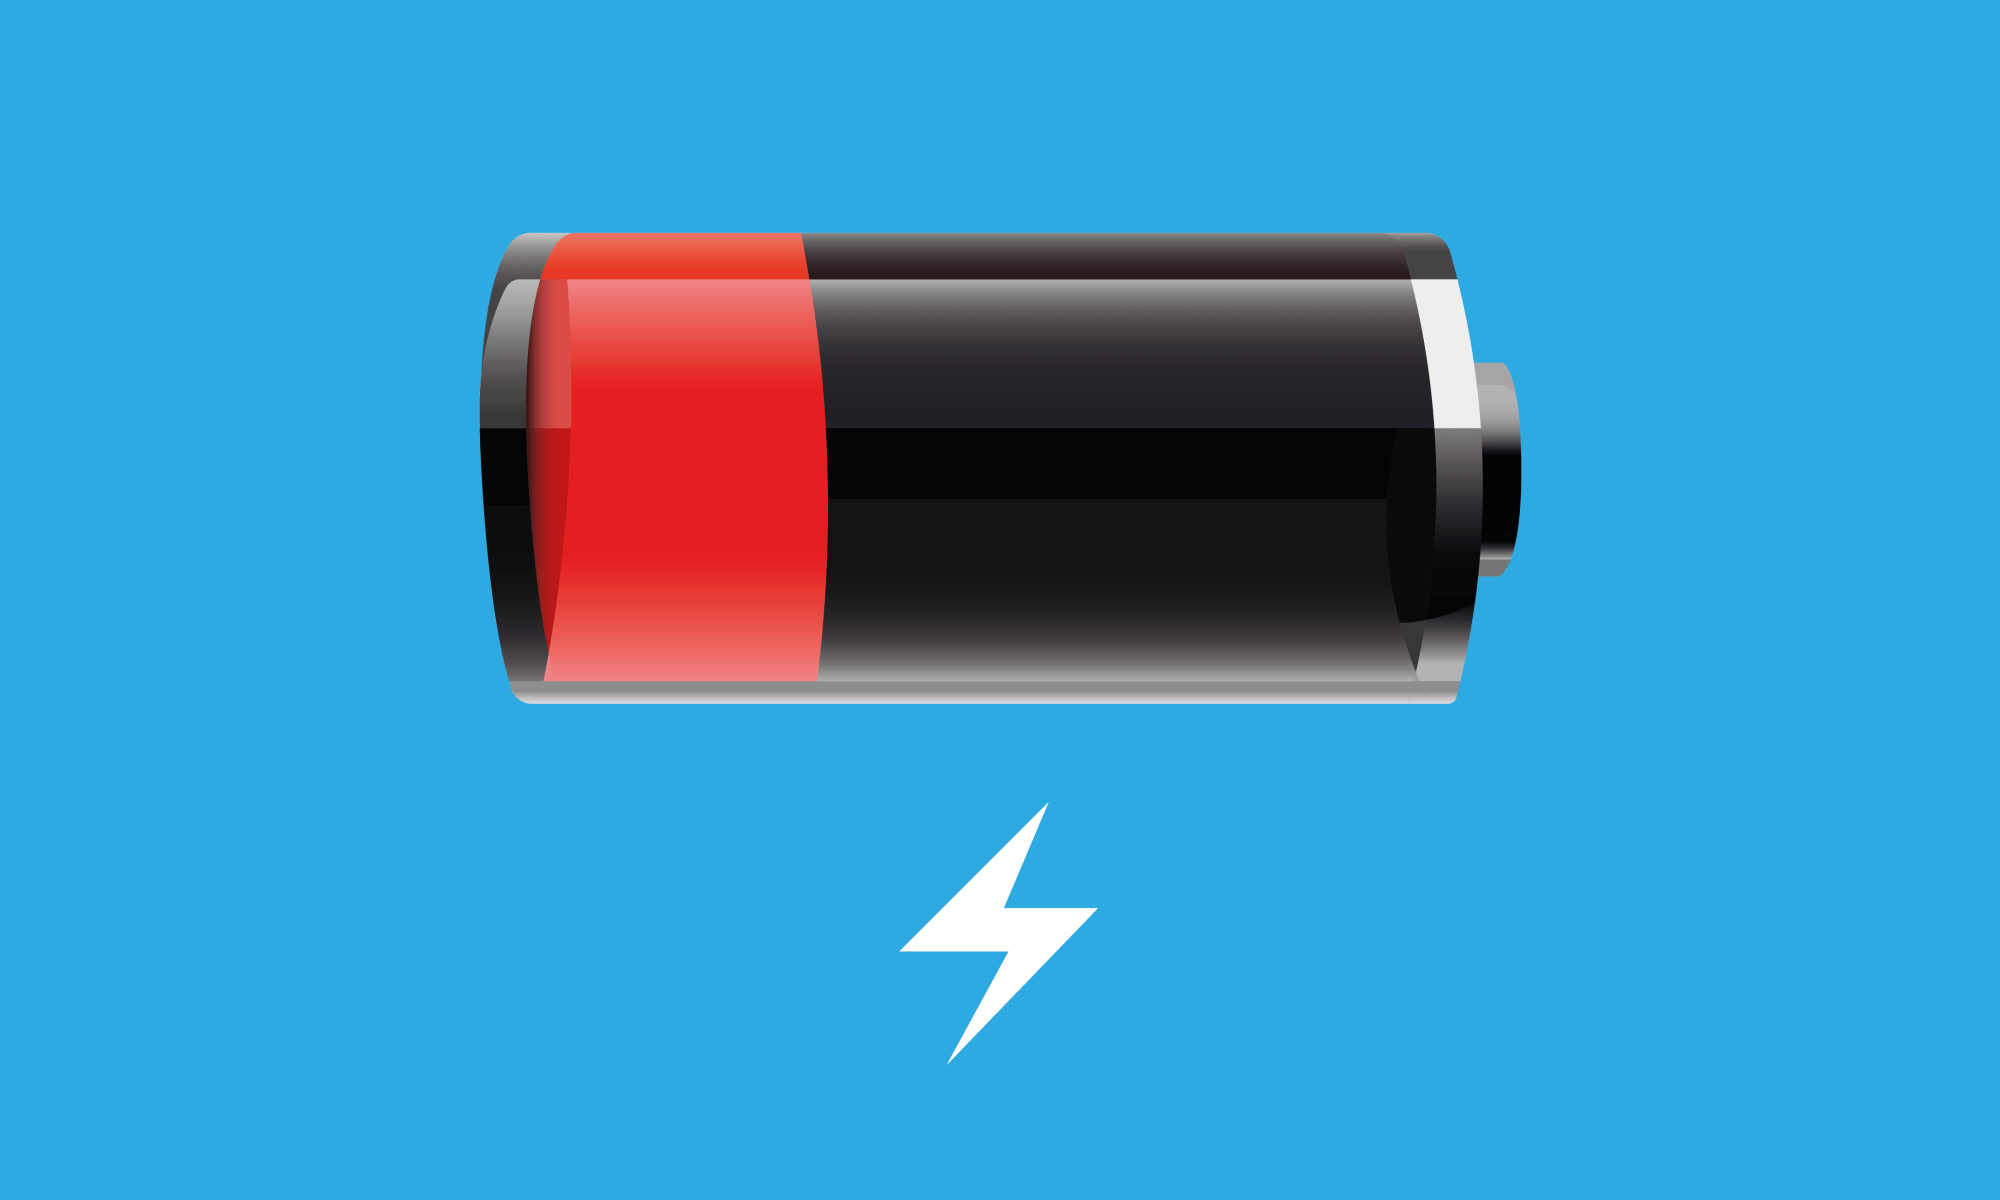 Battery Symbol Iphone What To Do If Your Iphone Wont Charge Switched On Insurance